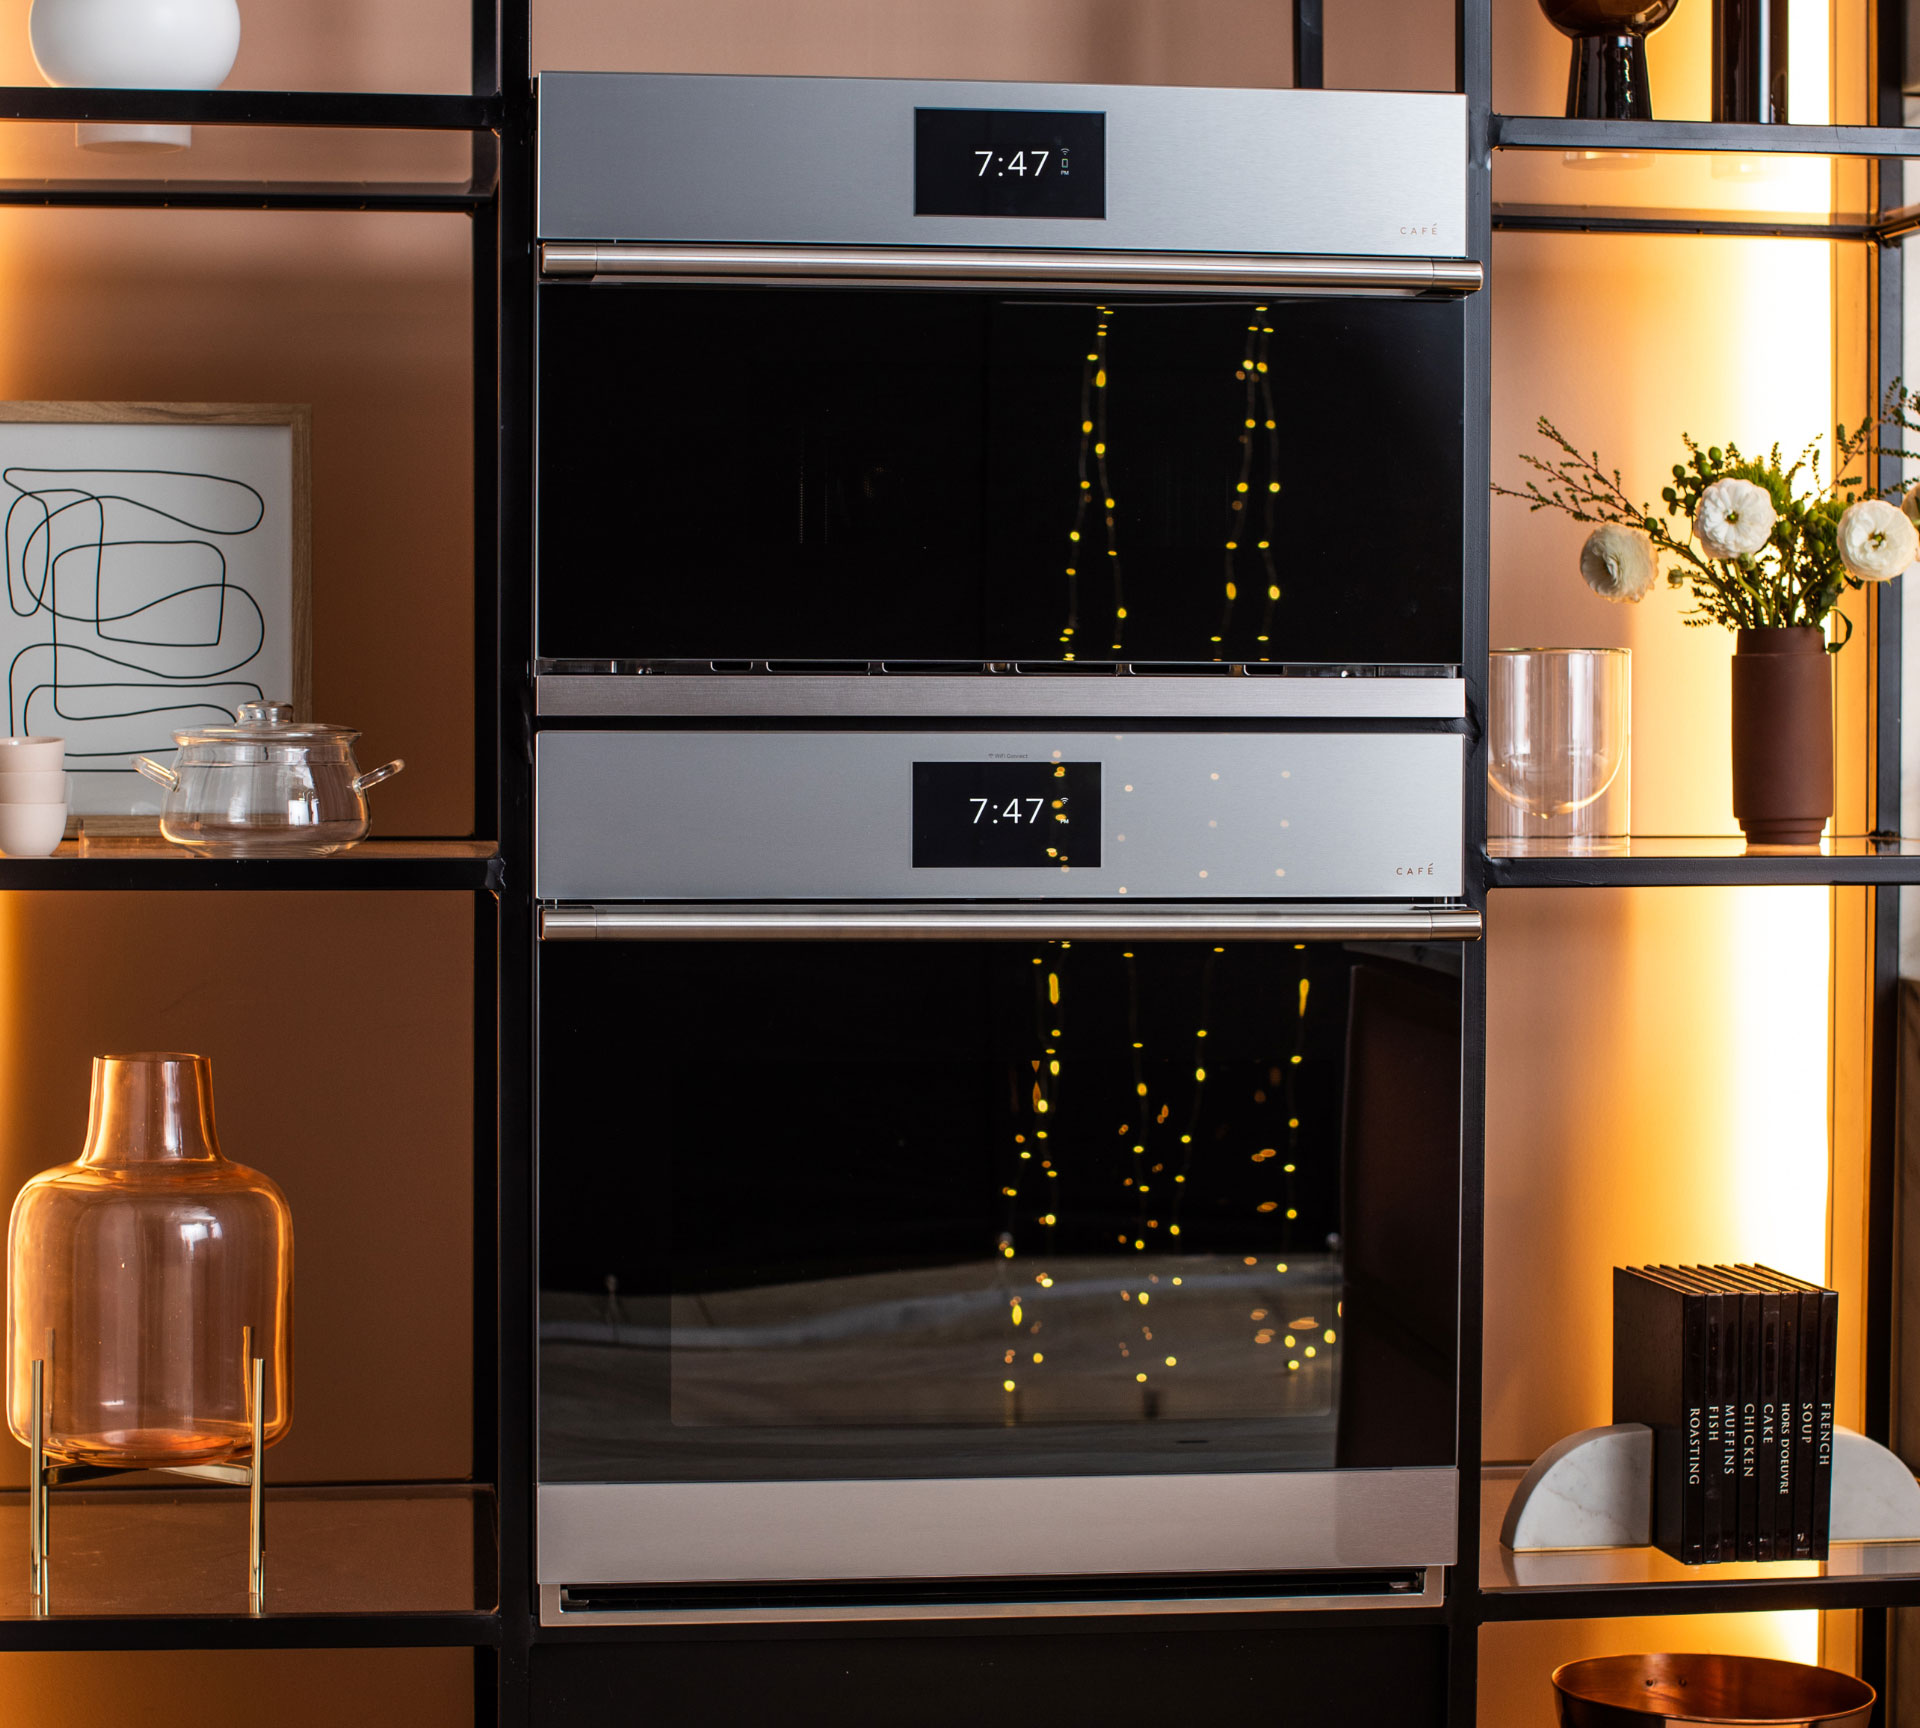 Modern Glass wall ovens with sparkly lights reflected in them